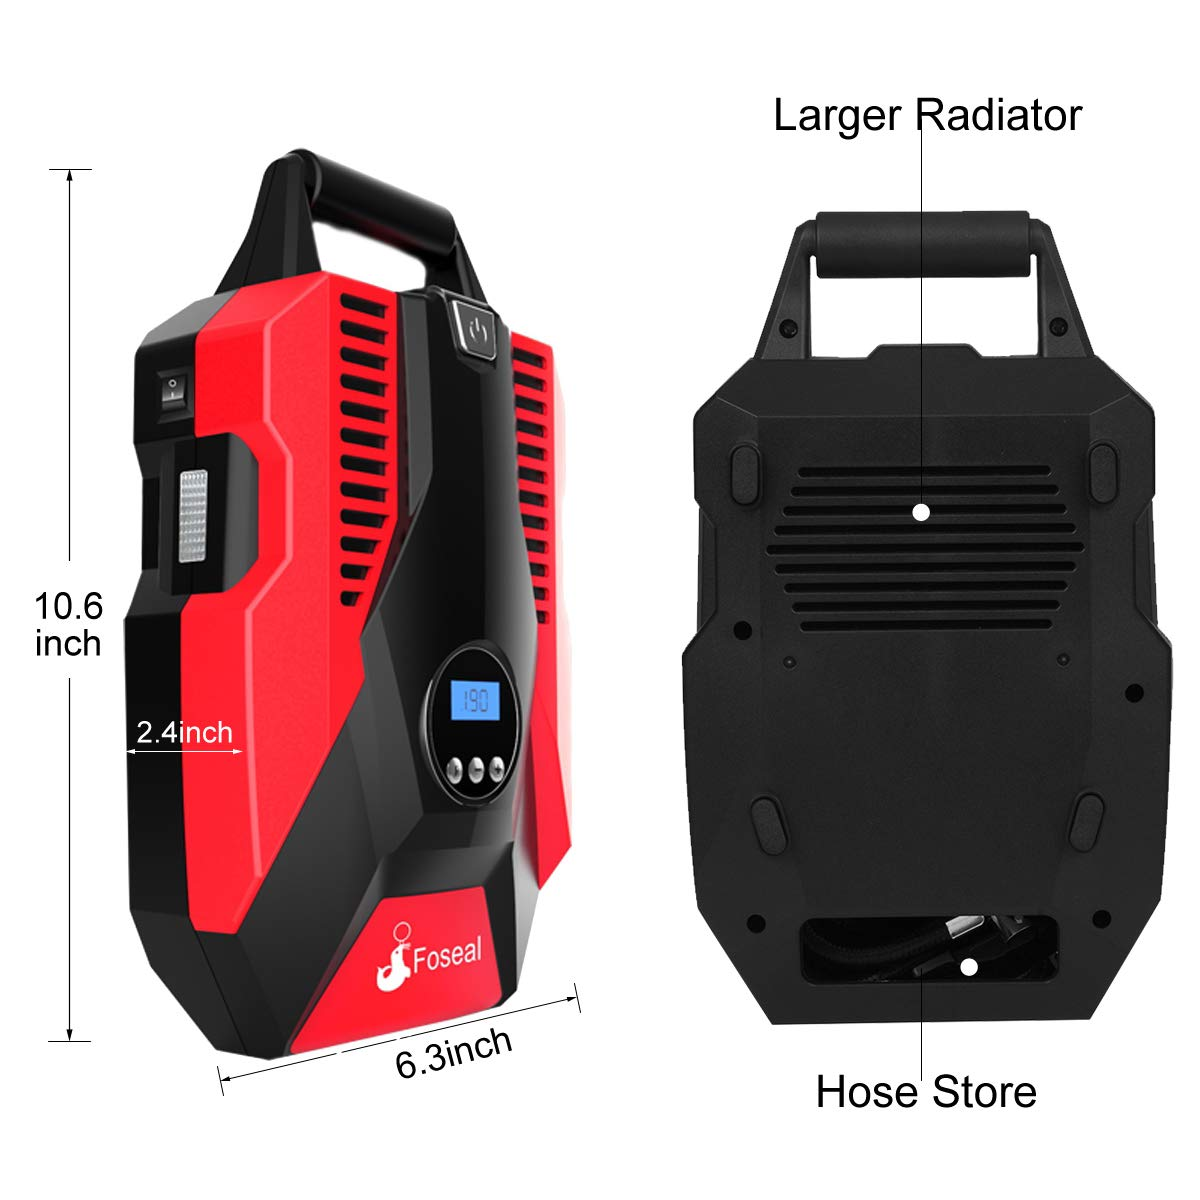 Foseal 1 Red Portable Air Compressor, 12V DC Digital Inflator 150 PSI Auto Shut-Off Easy to Use Pump with Emergency Led Light and Long Cable for Car Motorcycle Bicycle/Schrader Tires Ball by Foseal (Image #3)